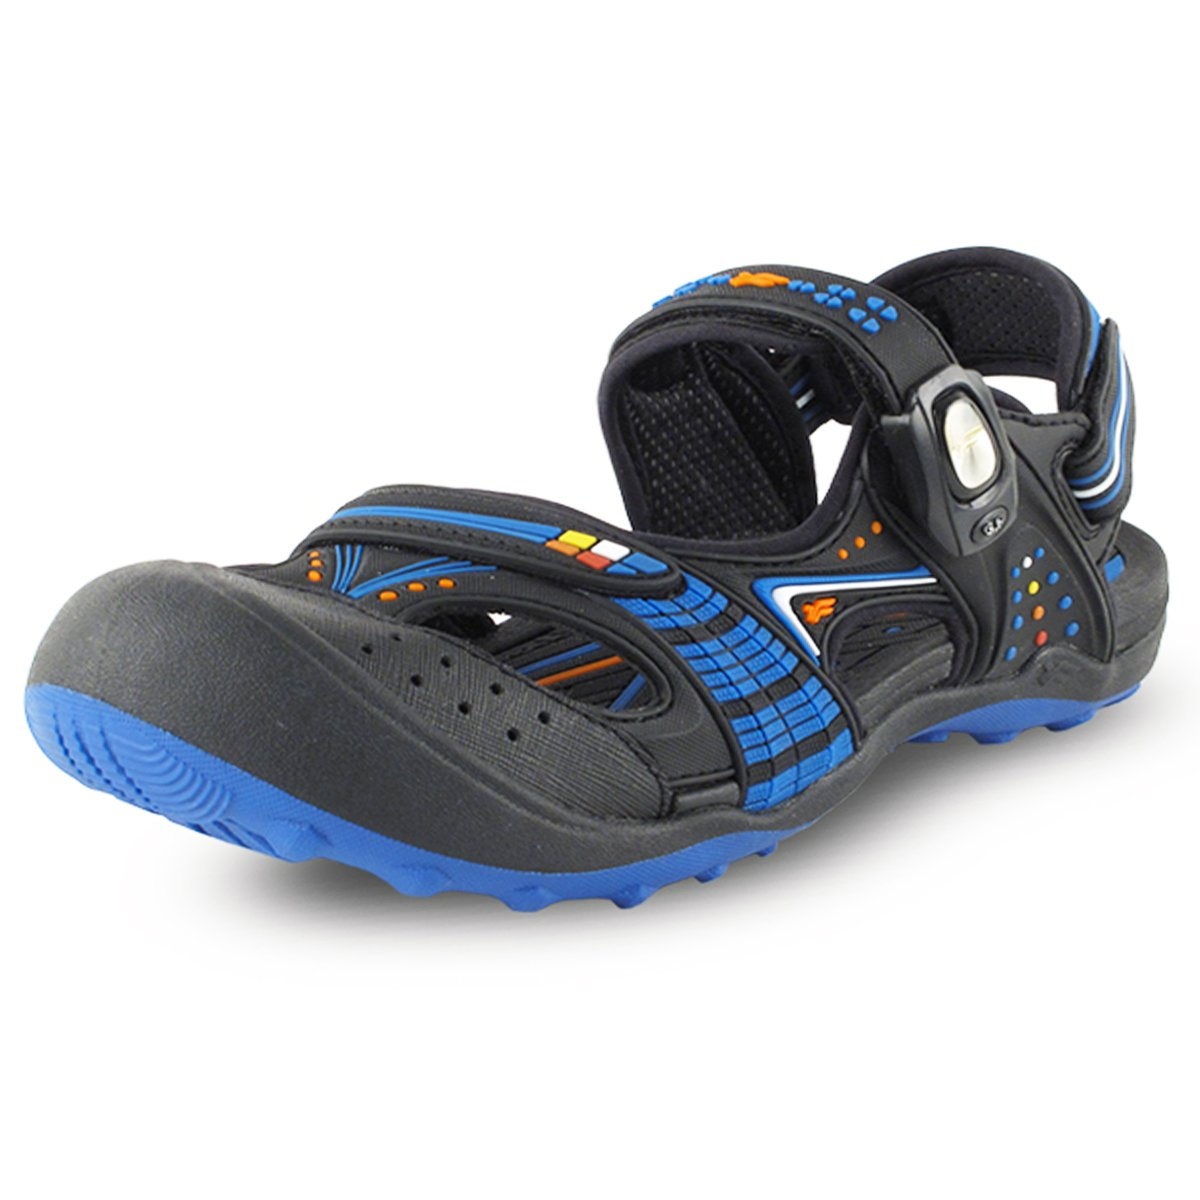 Gold Pigeon Shoes GP5937 Snap Lock Sandal: 7668 Black Blue, EU39